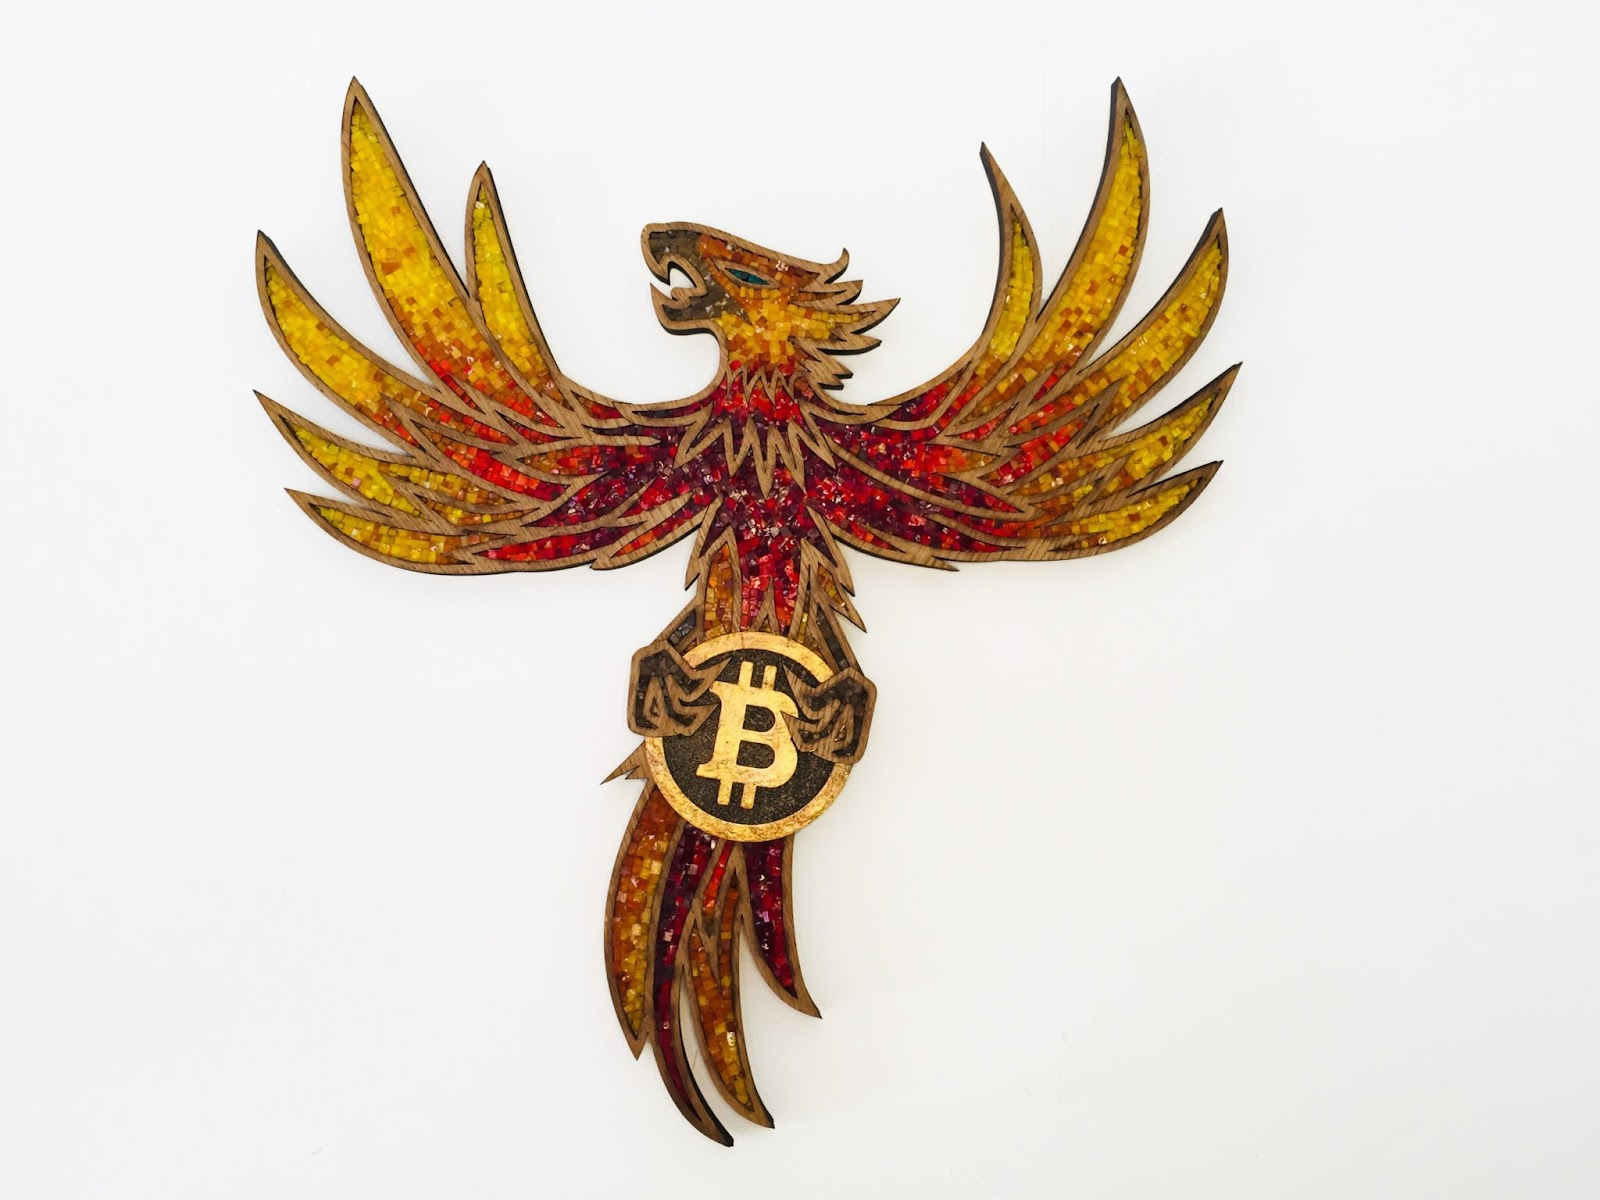 Scarce City's Lightning Auctions Debut Fetches 1 Bitcoin For BTC-Themed Art